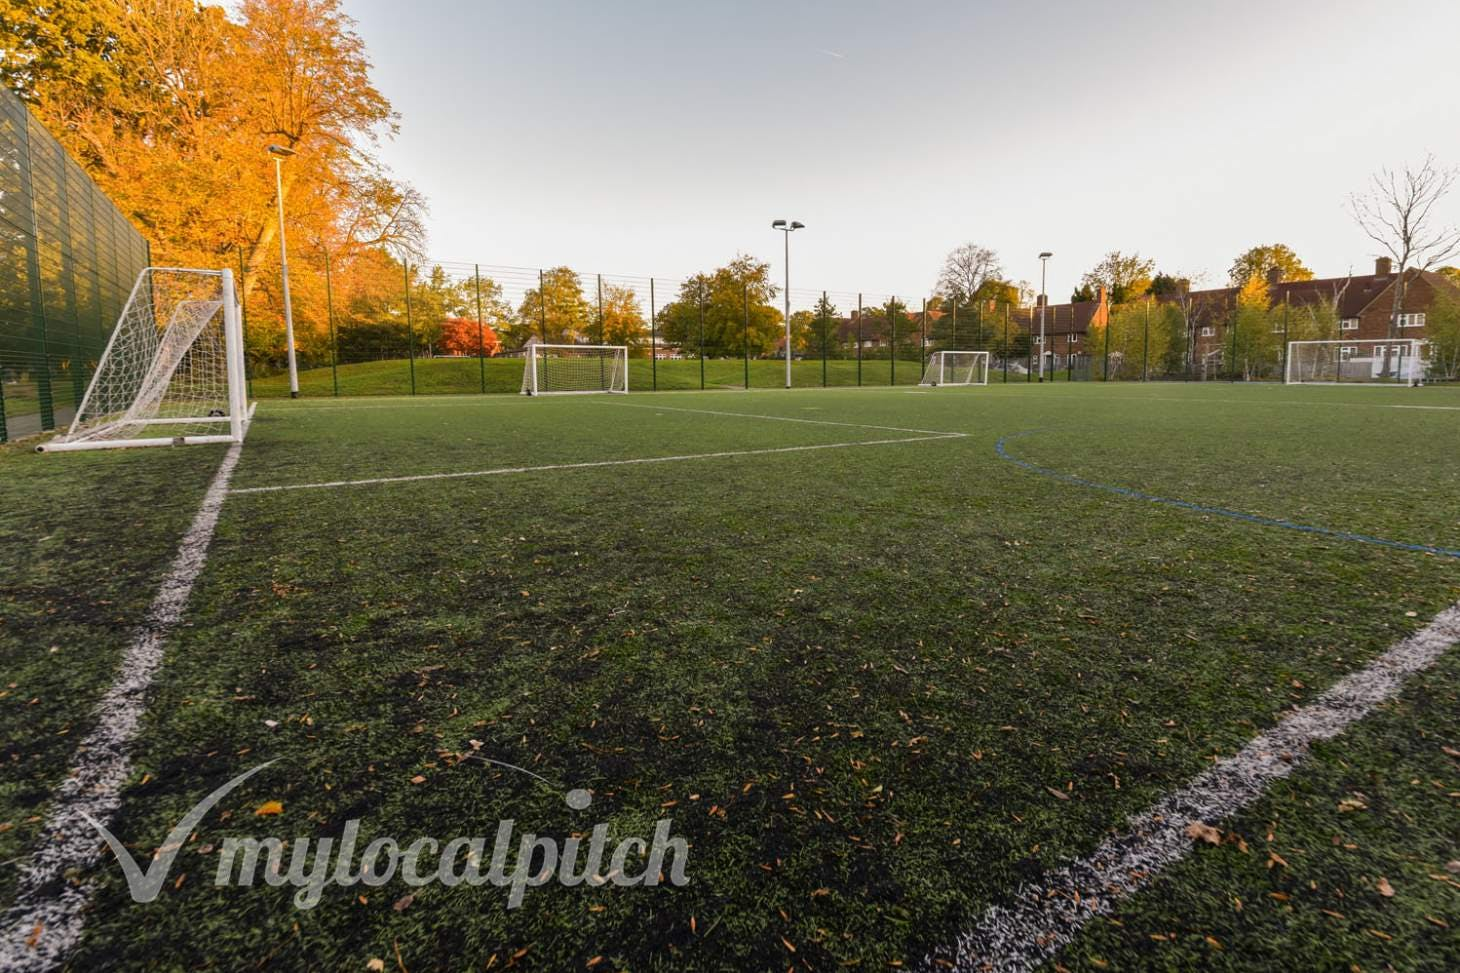 Cedars Youth & Community Centre 5 a side   3G Astroturf football pitch